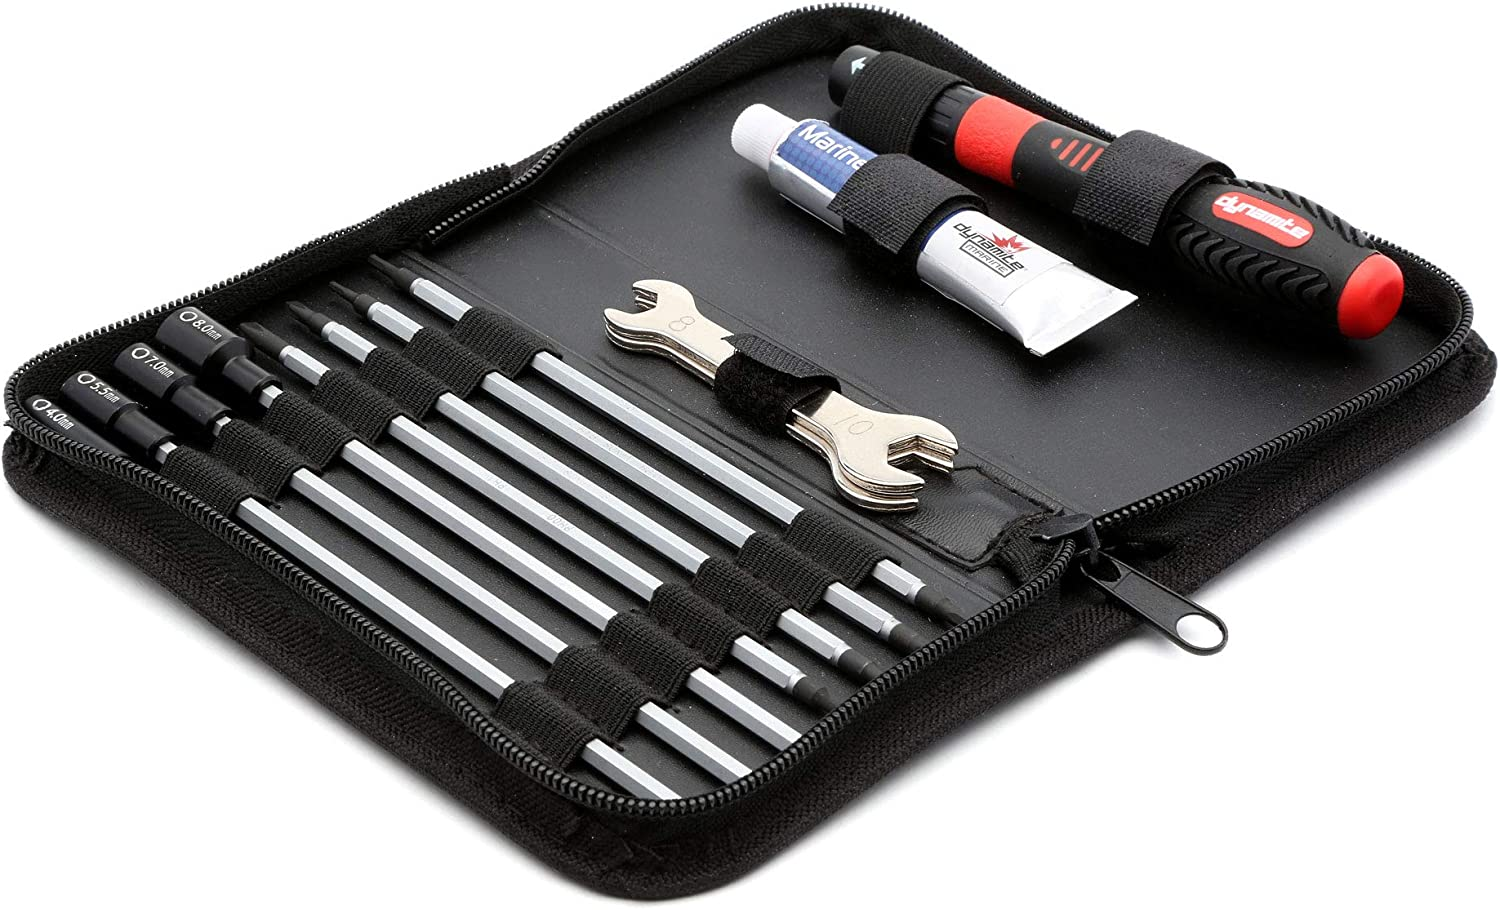 Dynamite Start Up Tool Pro DYNT0502 New mail order Boat Set: In a popularity